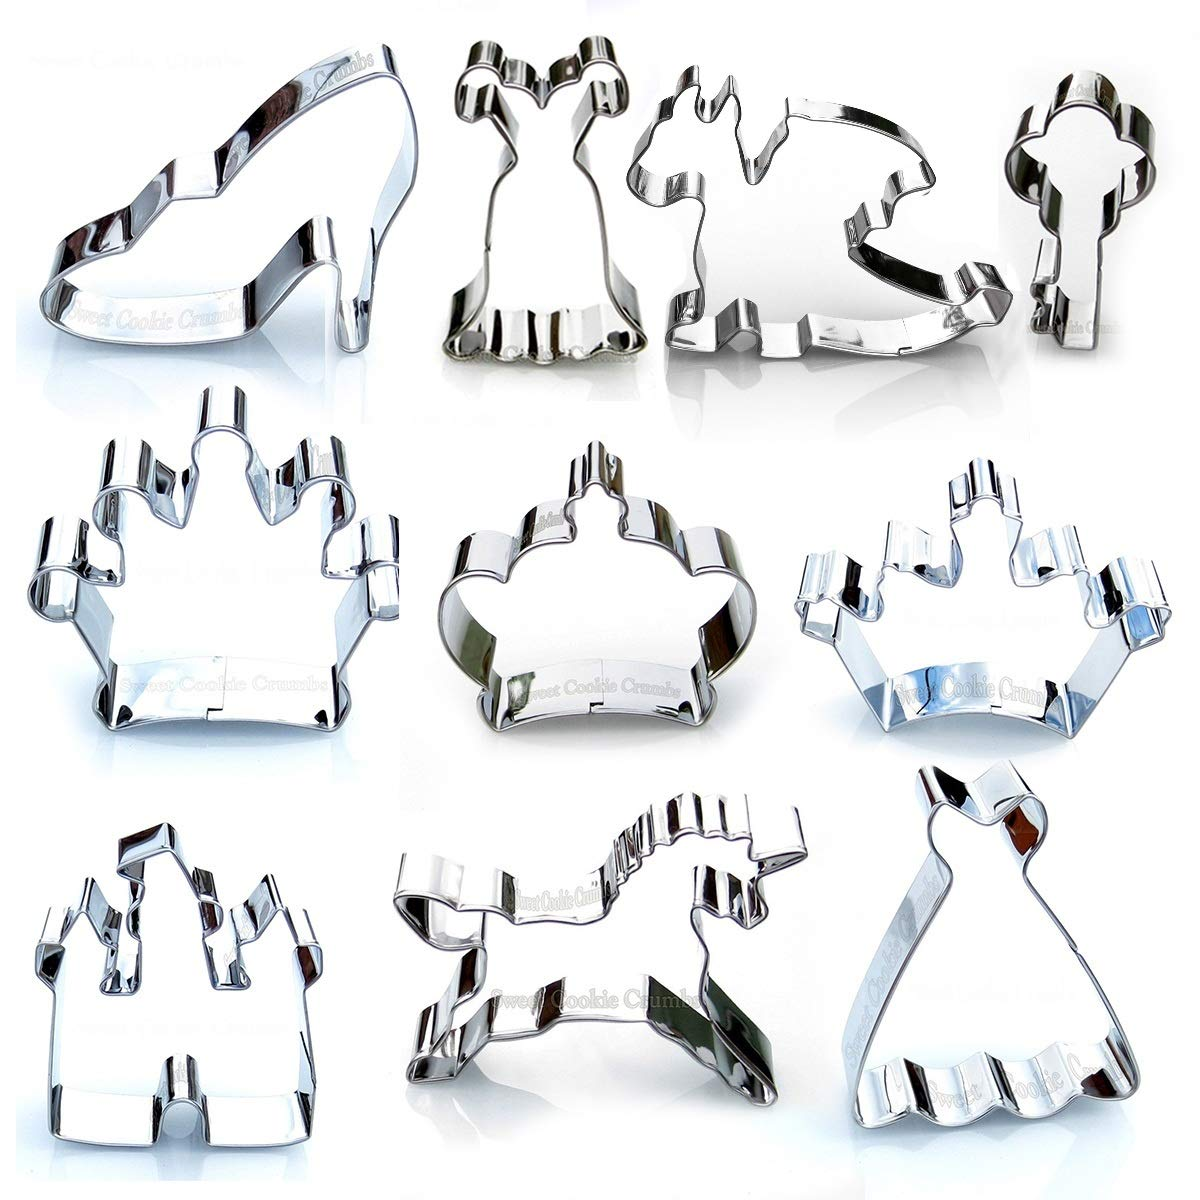 Princess Kingdom Cookie Cutter Set - 10 Piece Stainless Steel by Sweet Cookie Crumbs (Image #9)